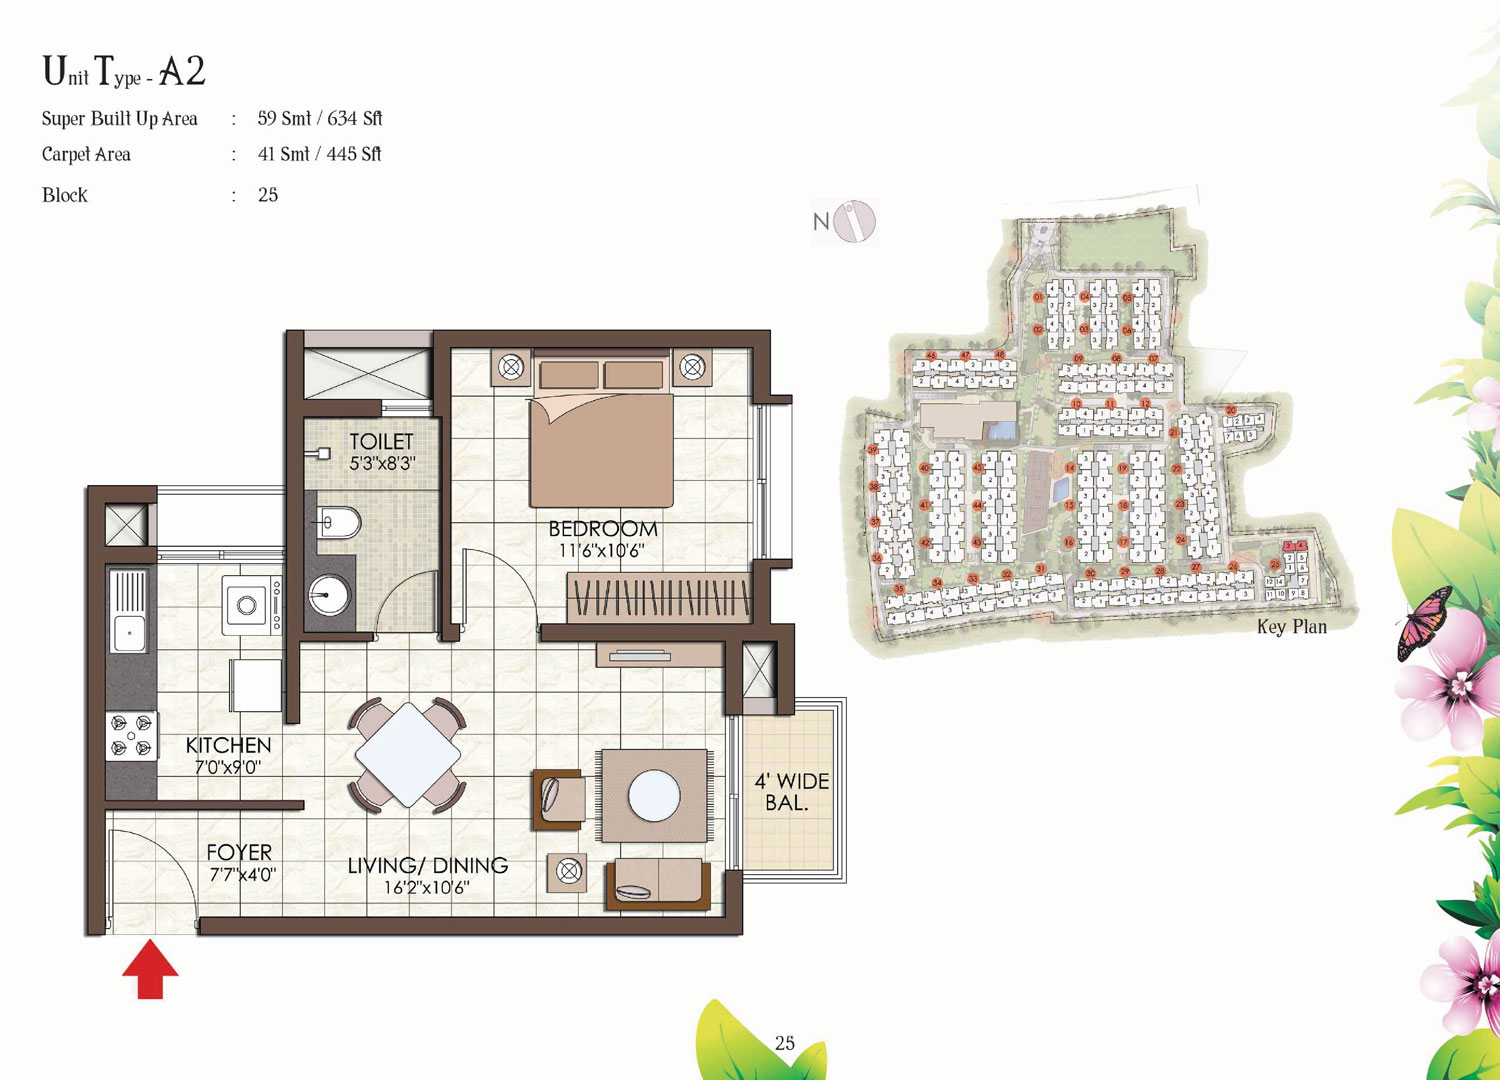 Type A2 - 634 Sq Ft